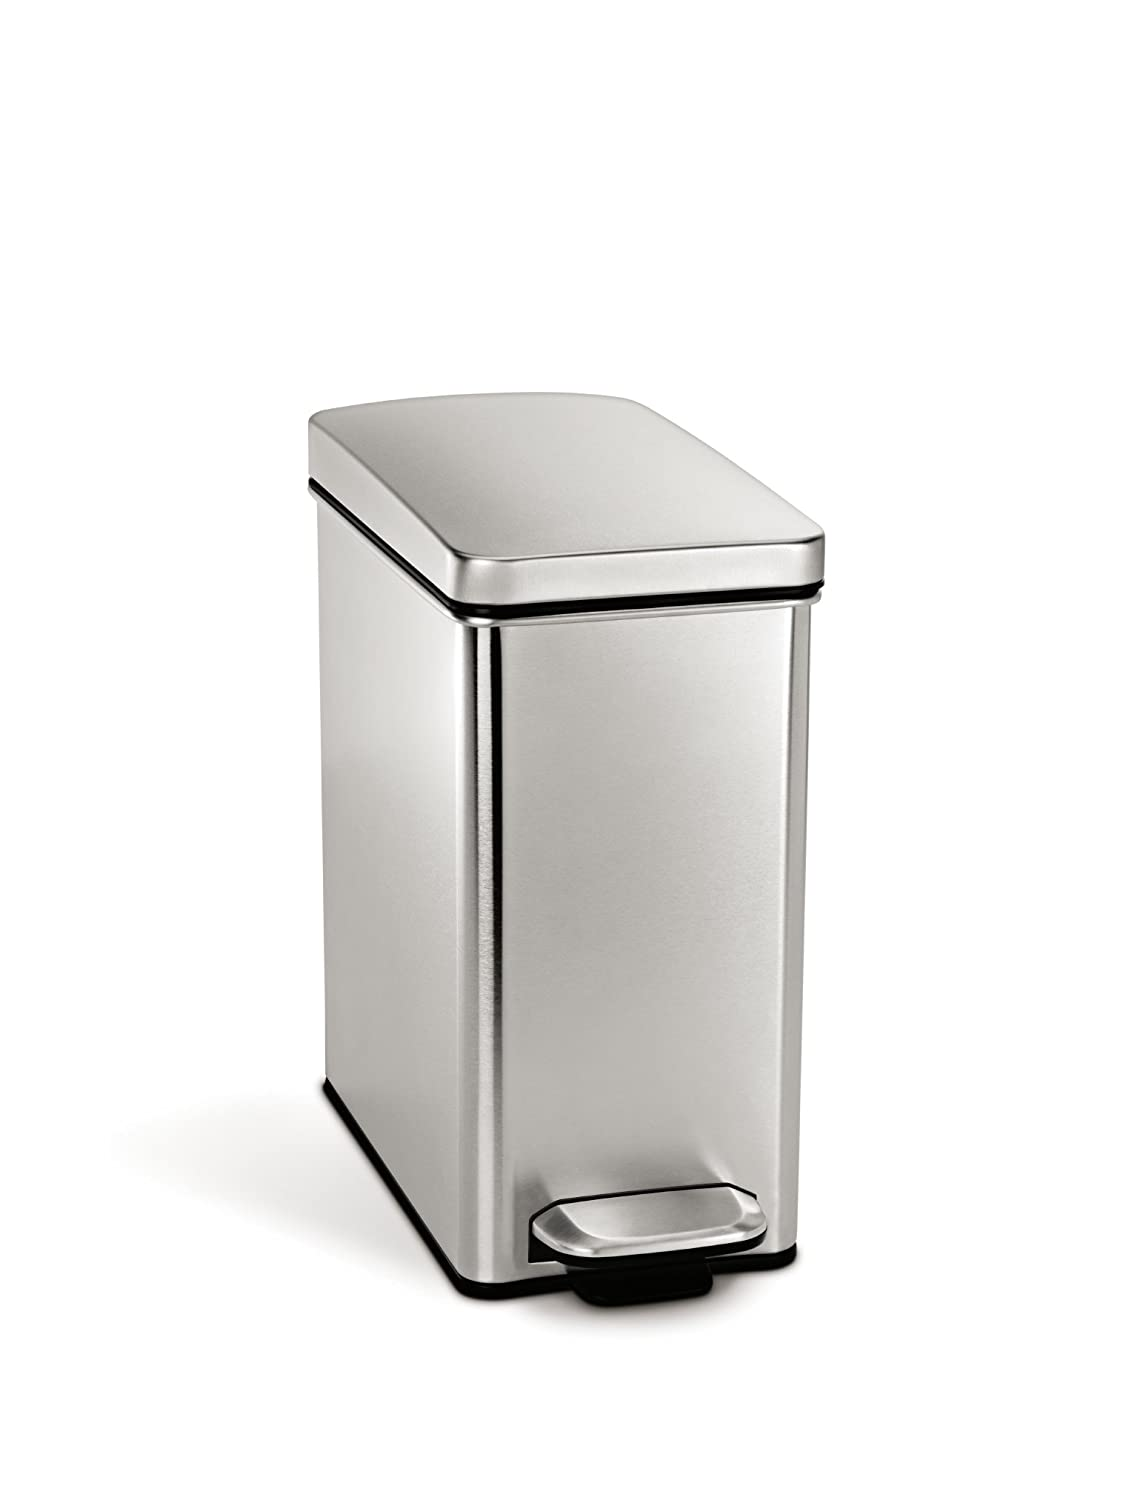 Modern toilet trash can square step w lid cabinet small bathroom trash can with lid bath trash Lidded trash can for bathroom